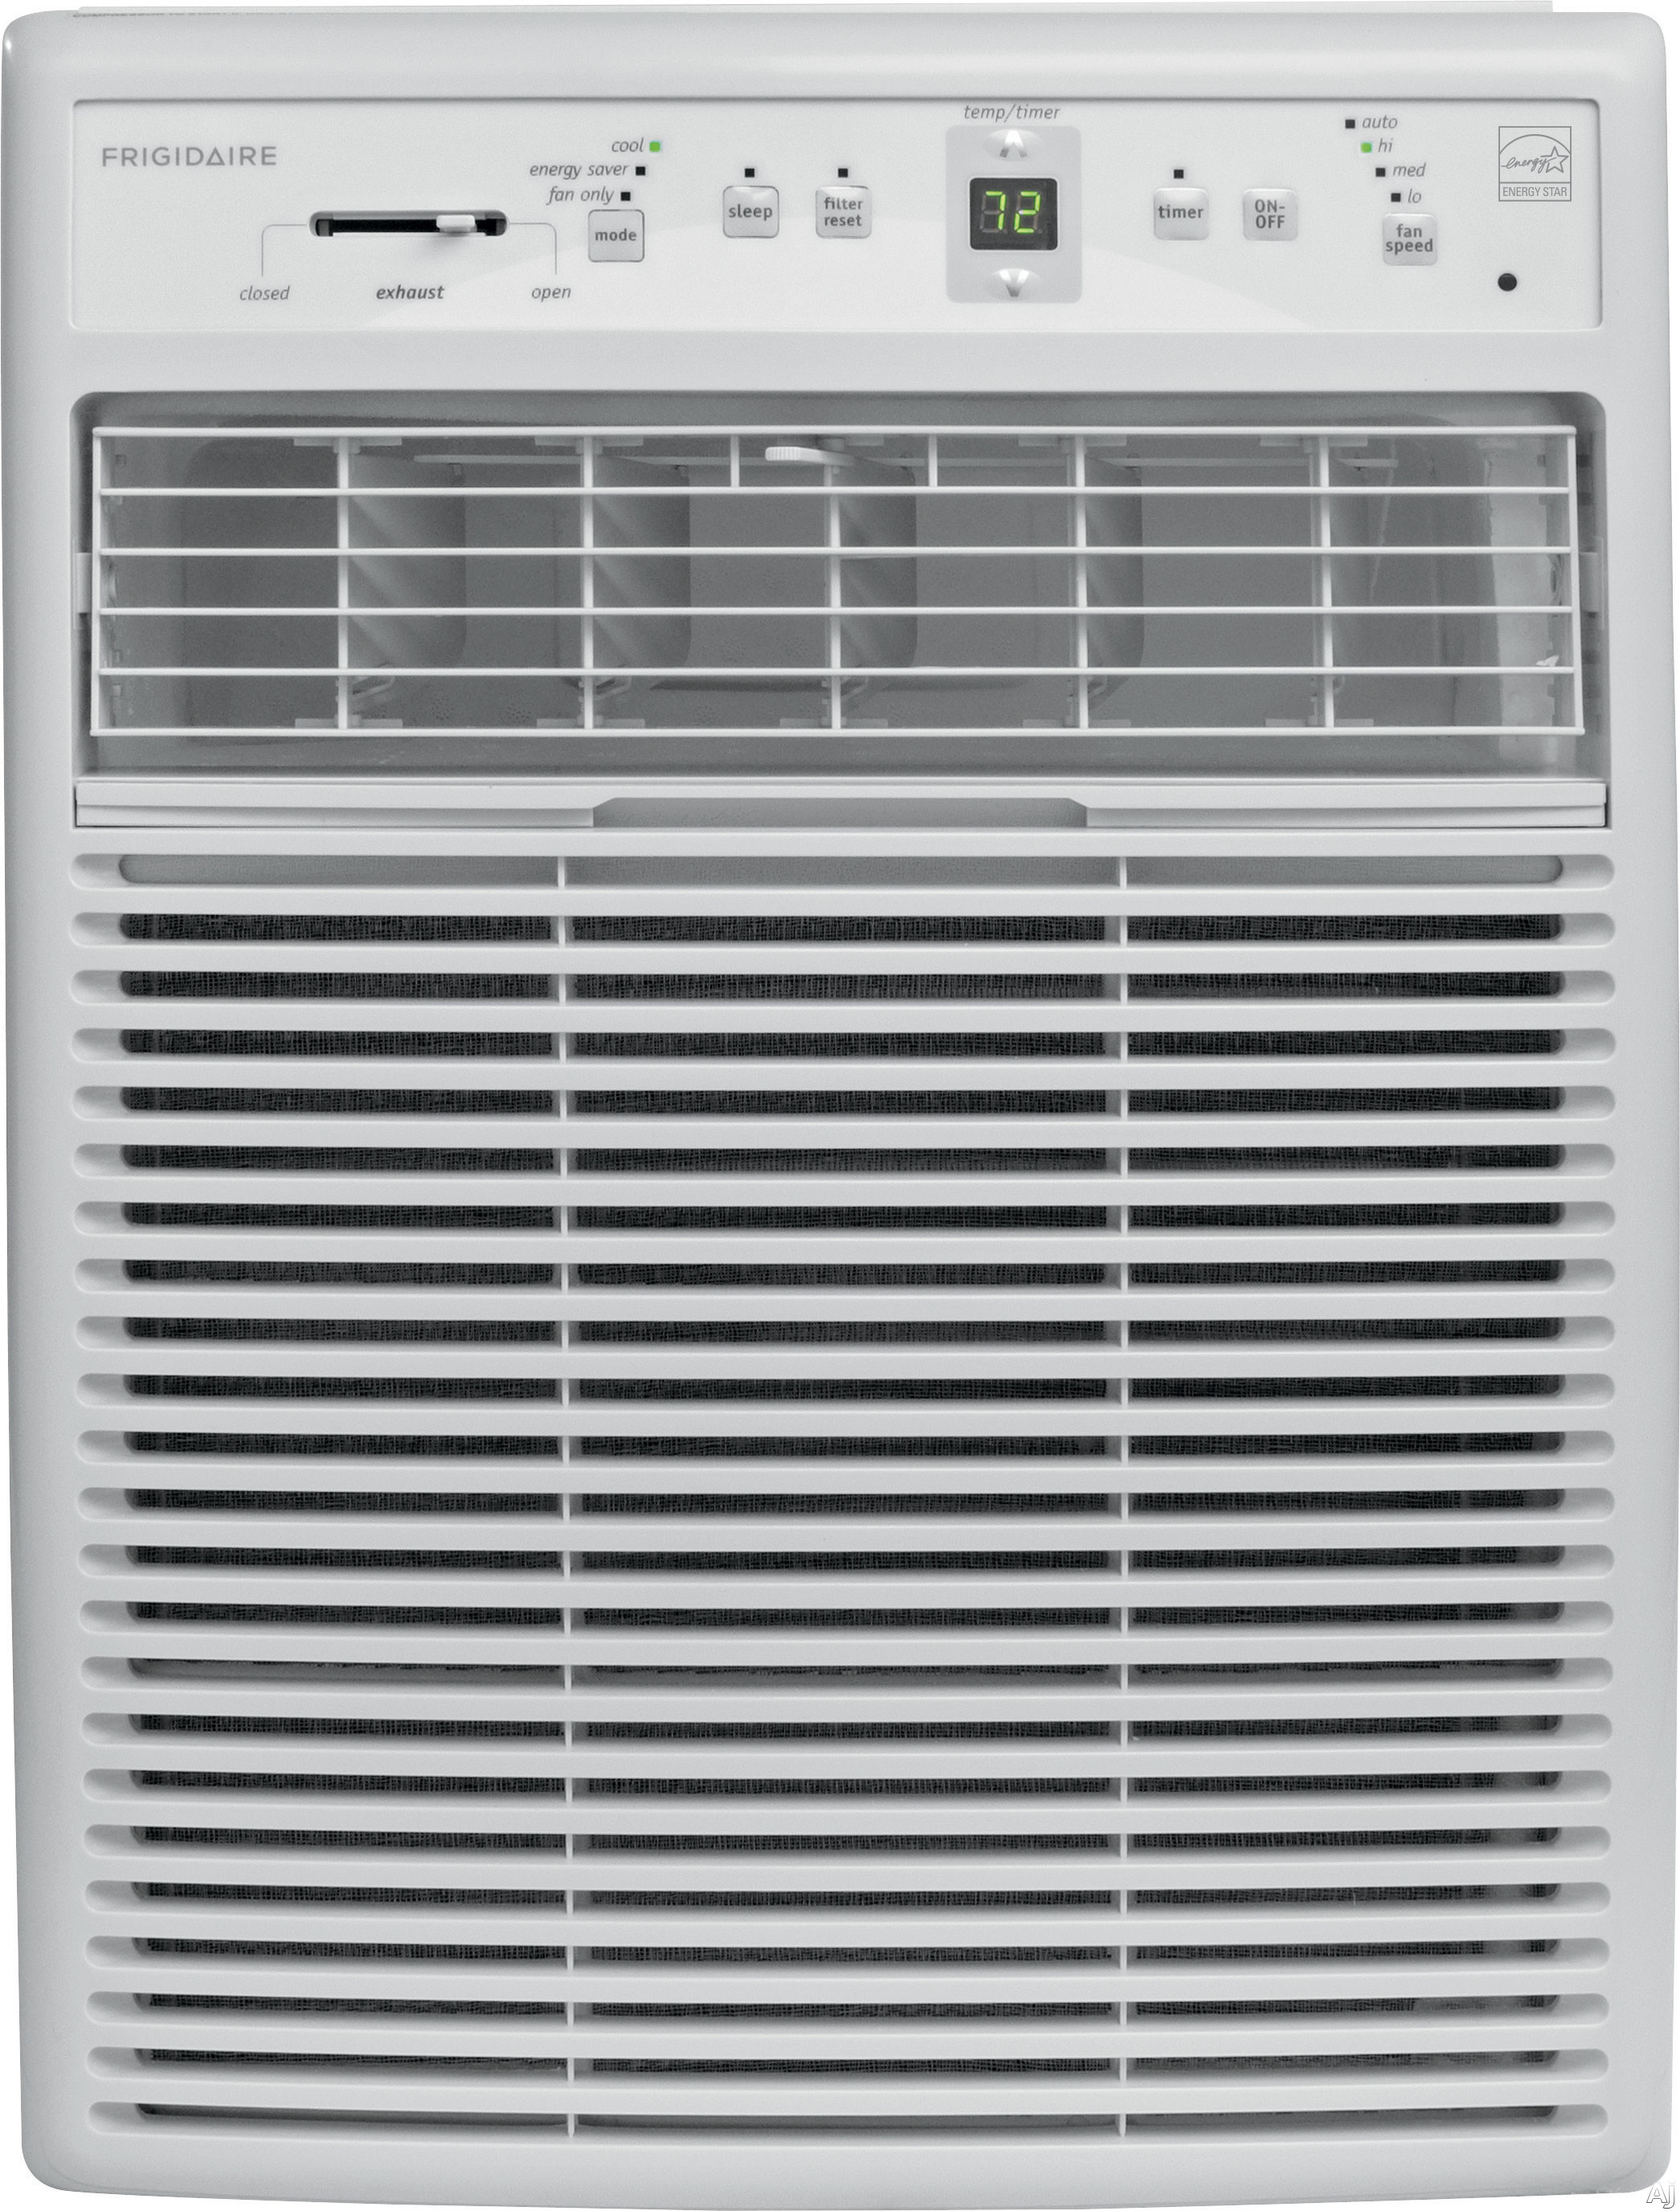 Home > Air Conditioners > Room Air Conditioners > FFRS0833Q1 #5C8A41